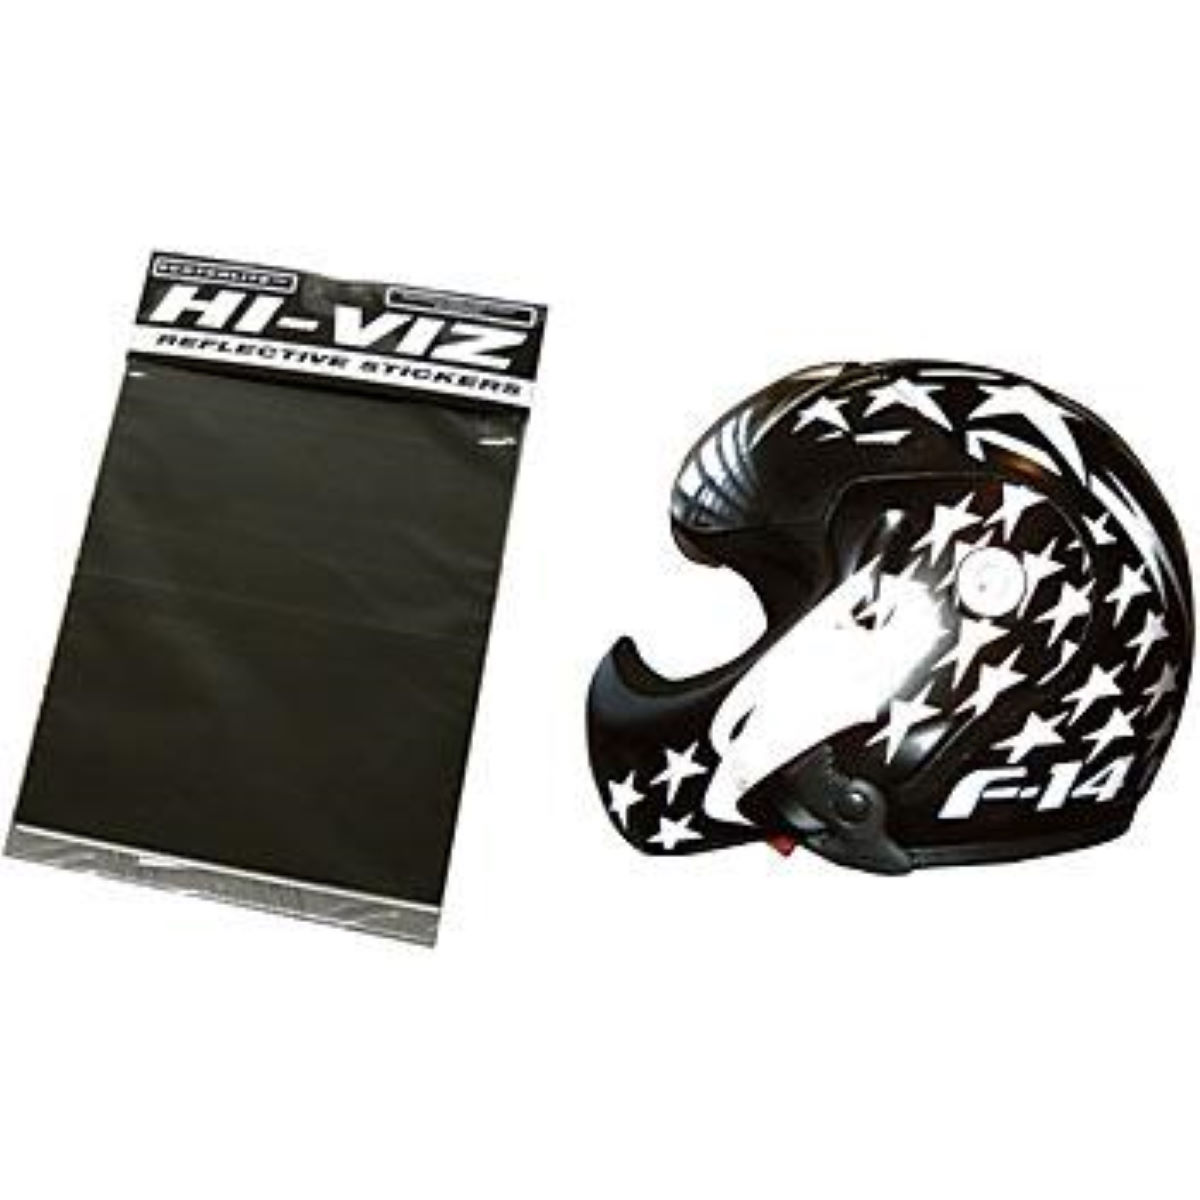 Respro Hi Viz Black Diamond Sticker Sheet